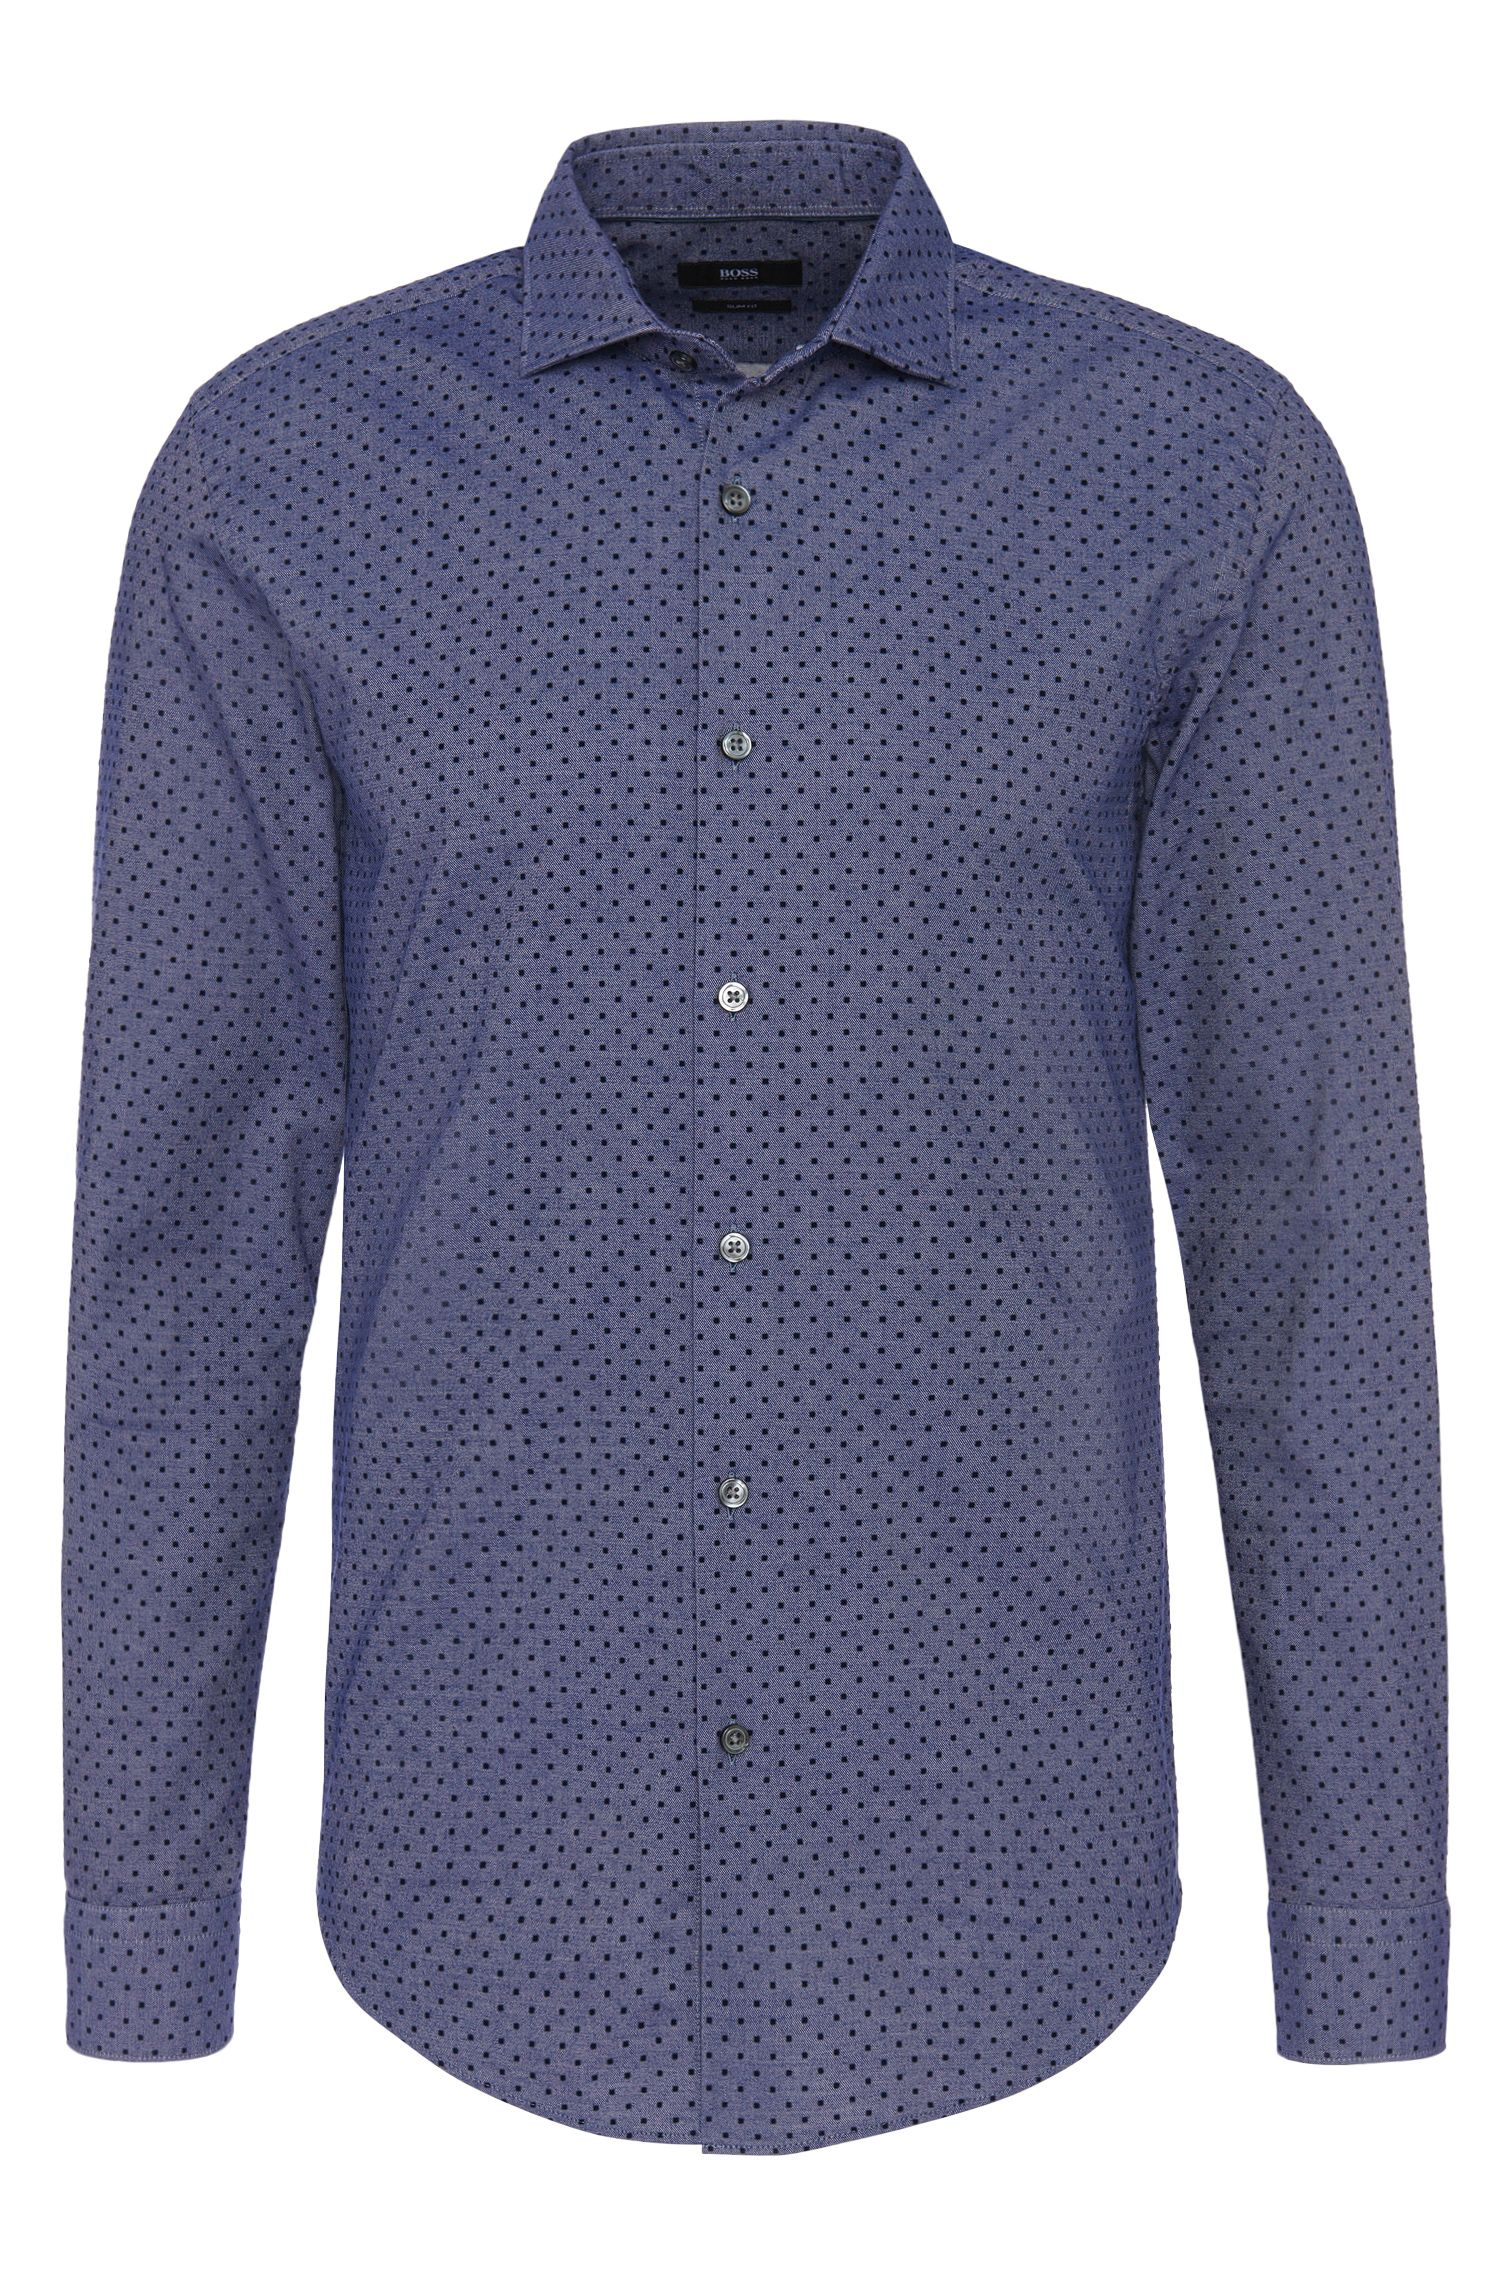 'Ridley'   Slim Fit, Cotton Embroidered Button Down Shirt